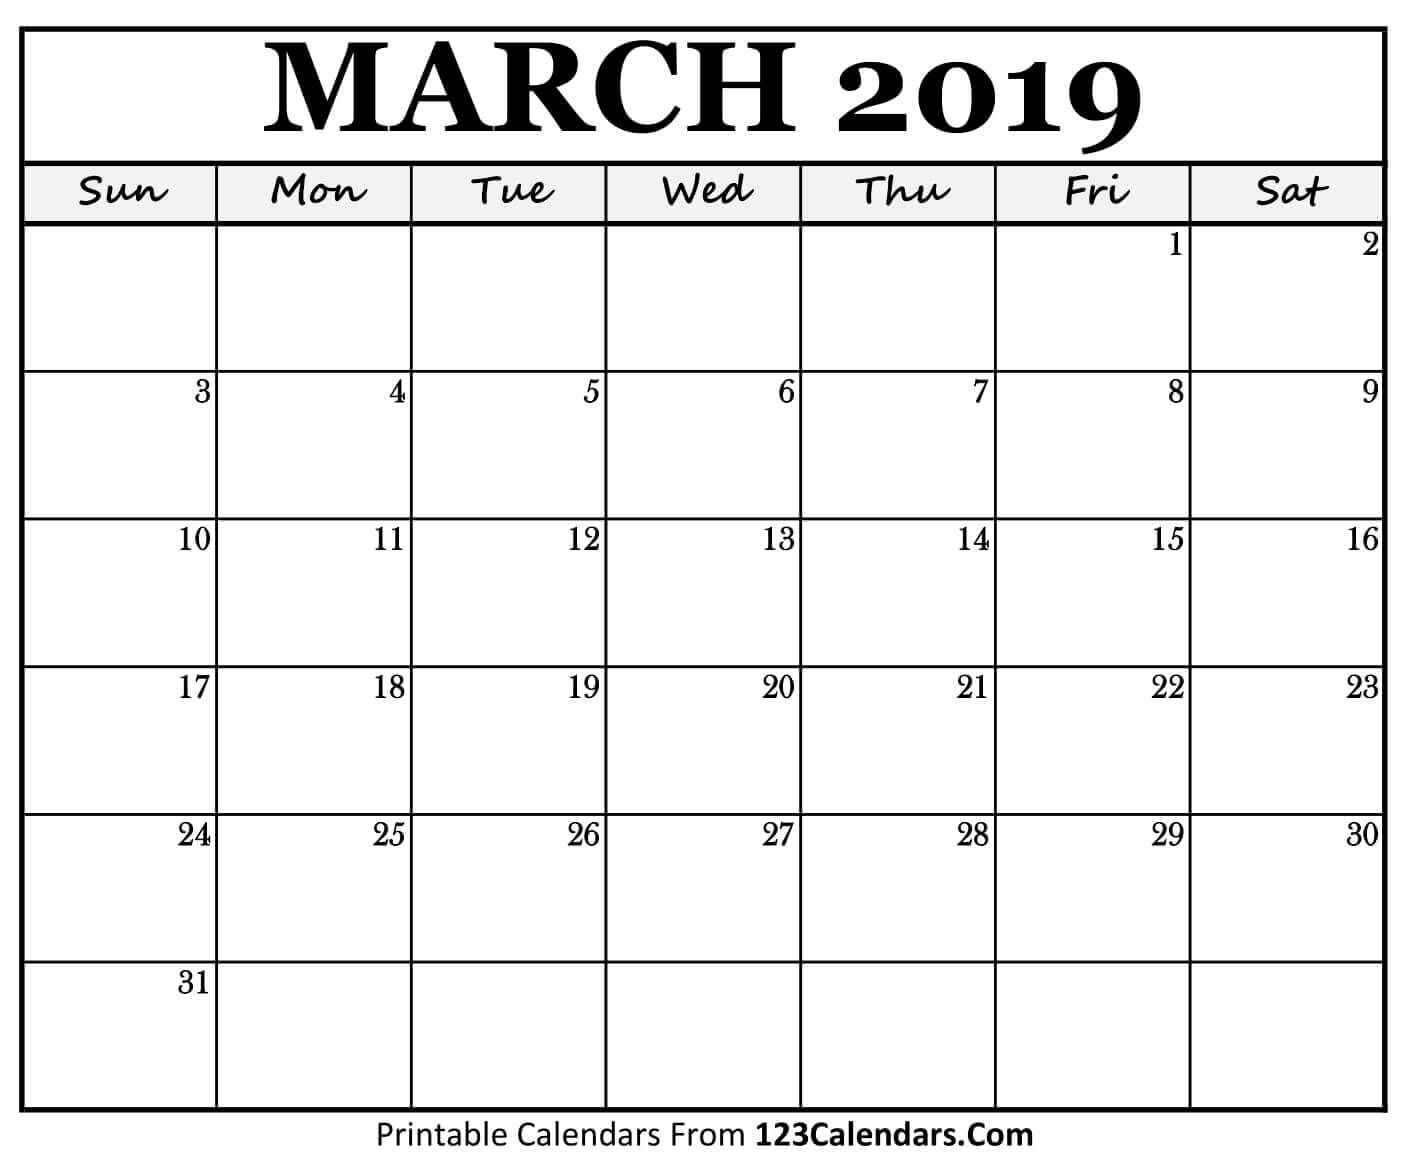 Monthly Calendar March 2019 Template Free Download | Free March 2019 inside March Calendar Printable Template